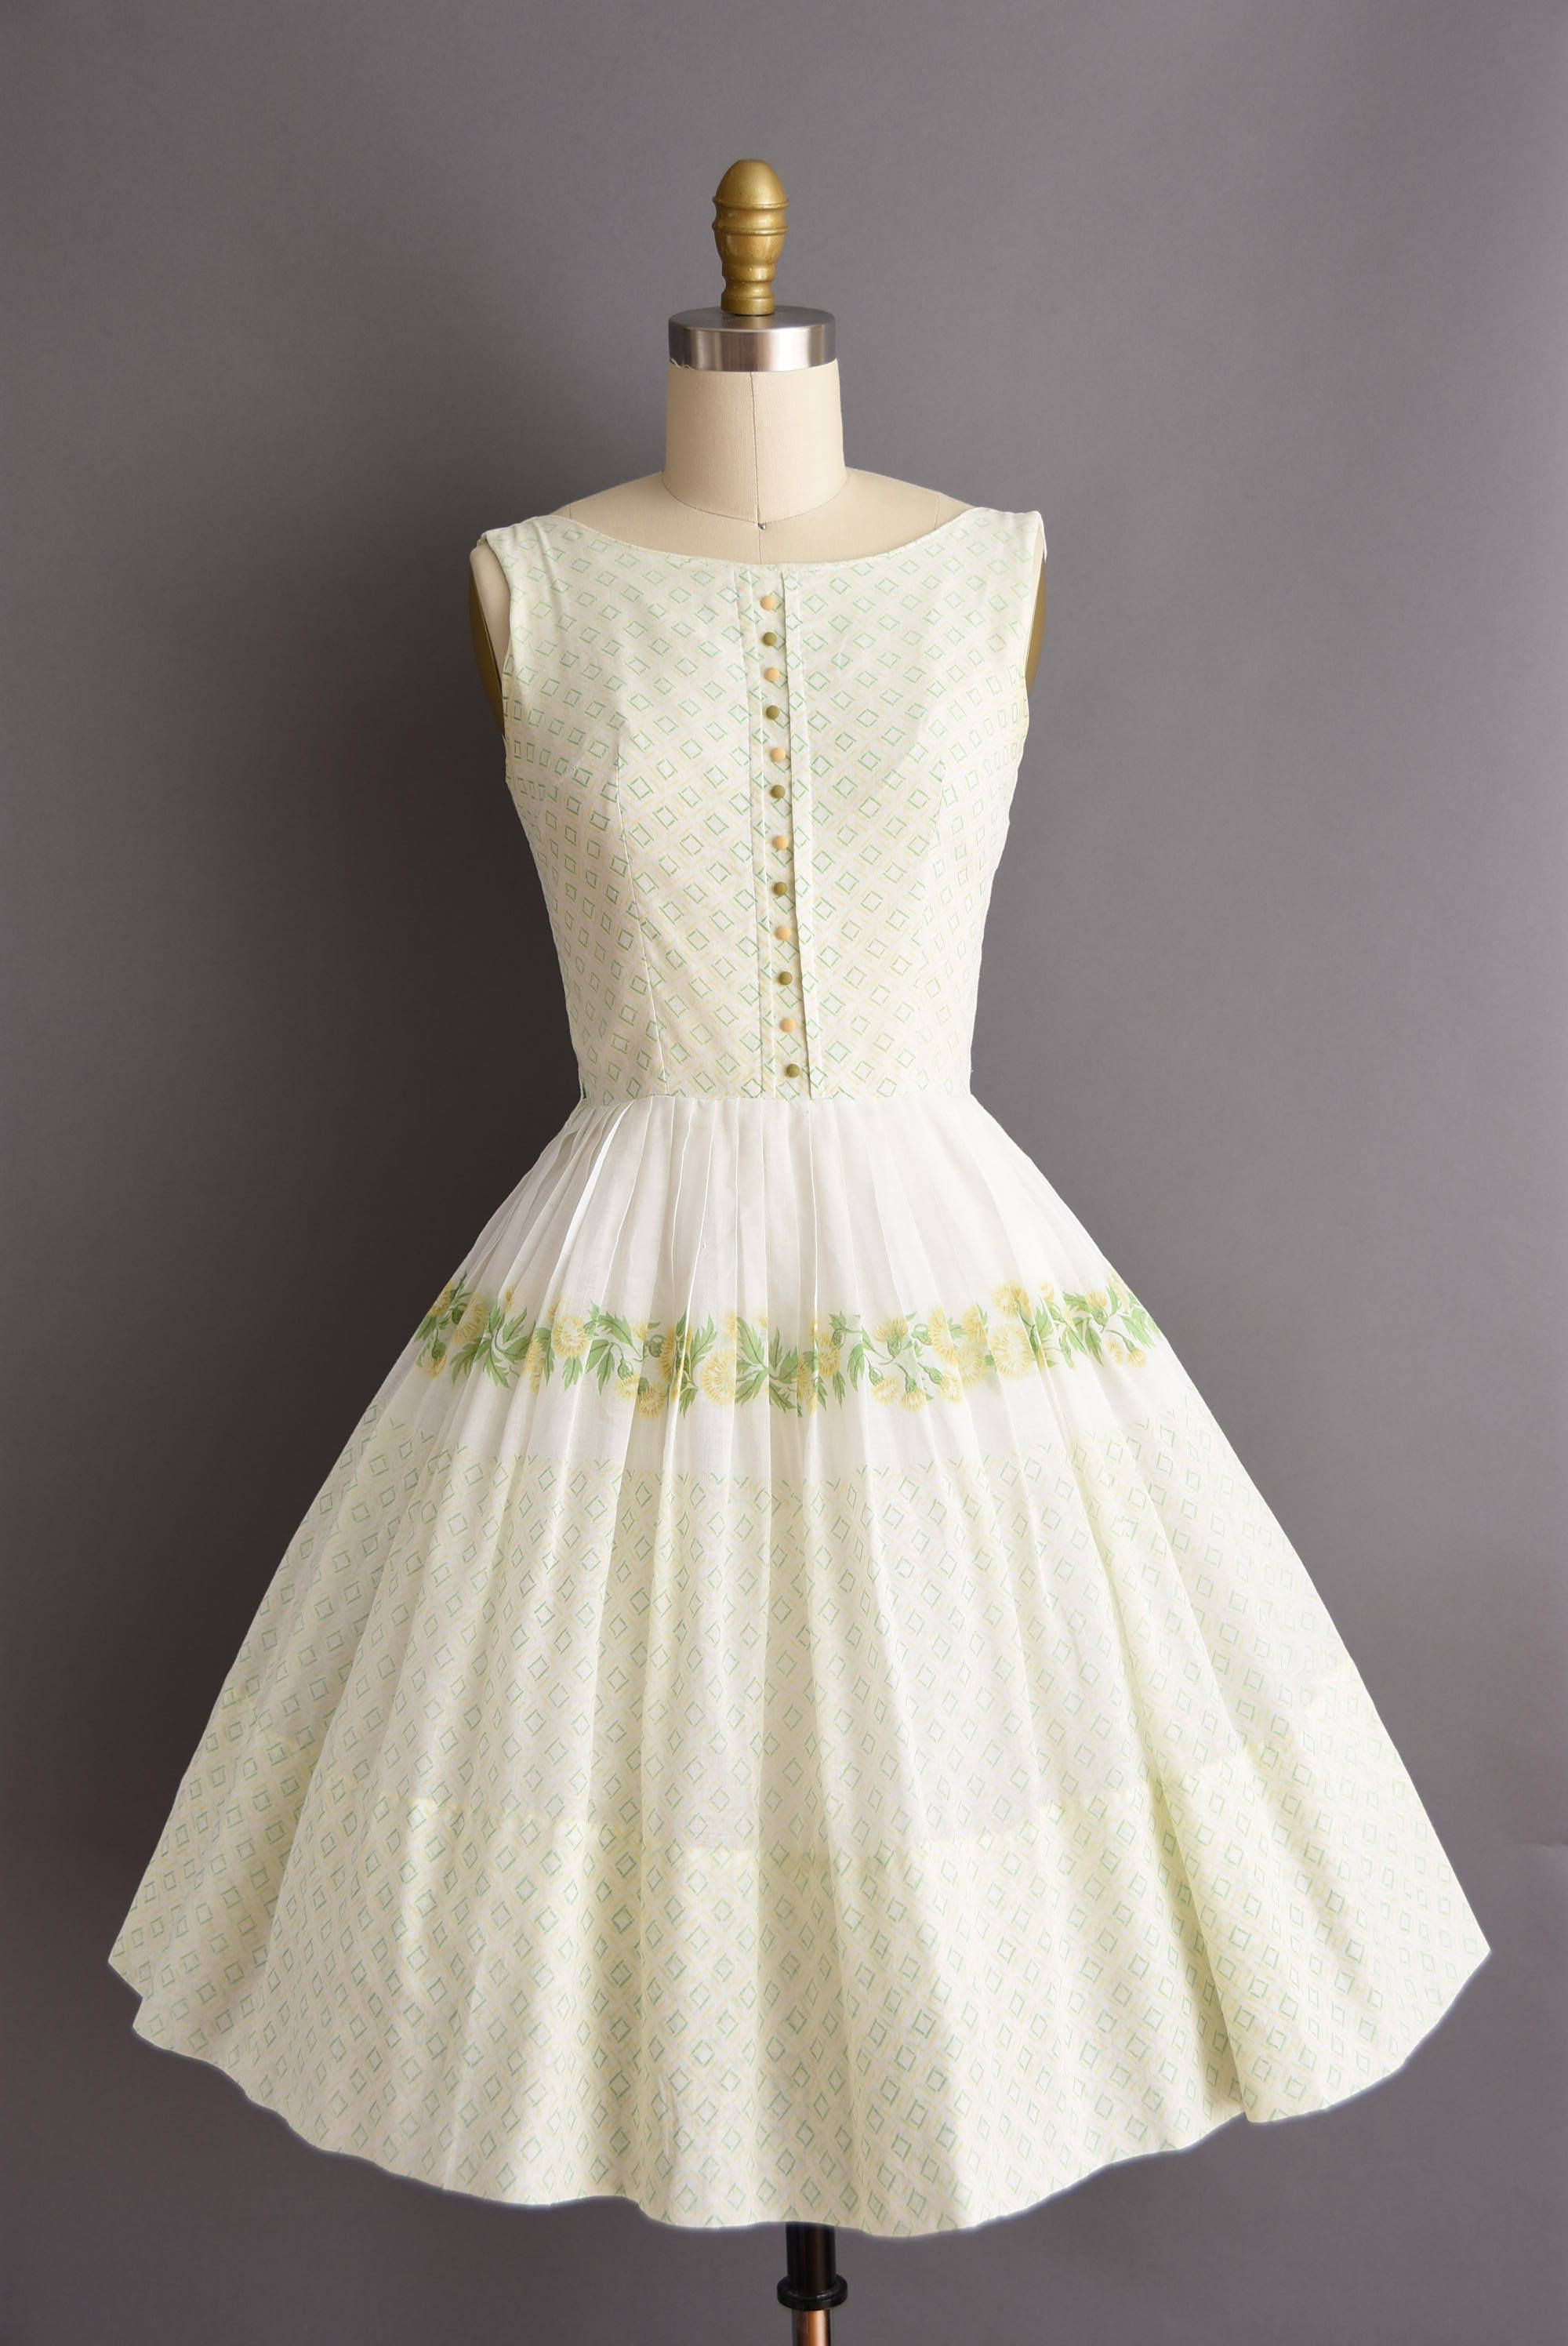 Vintage 1950s White Cotton Green And Yellow Floral Print Sun Dress 50s Small Full Skirt Floral Print Dress Dresses Retro Fashion Vintage Vintage Dresses [ 2992 x 2000 Pixel ]